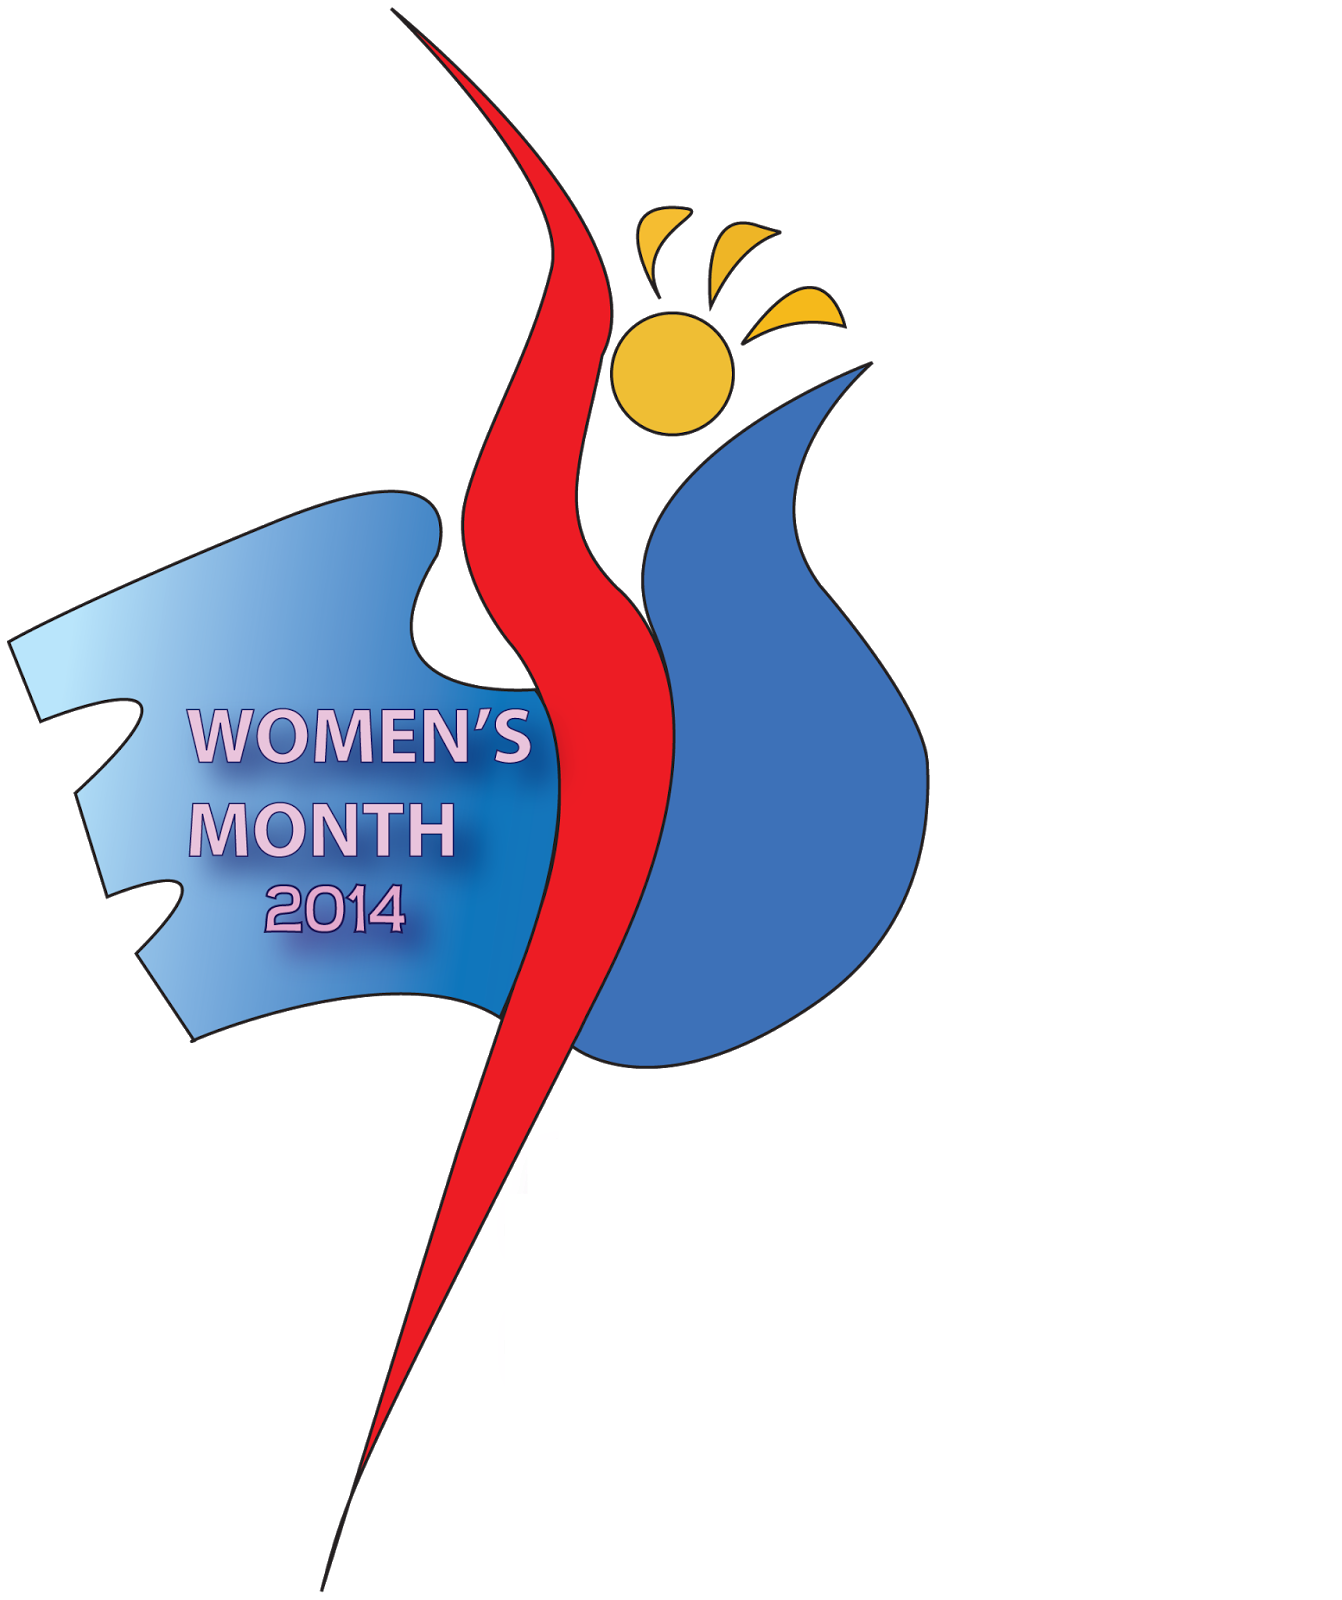 Women's Month 2014 Logo